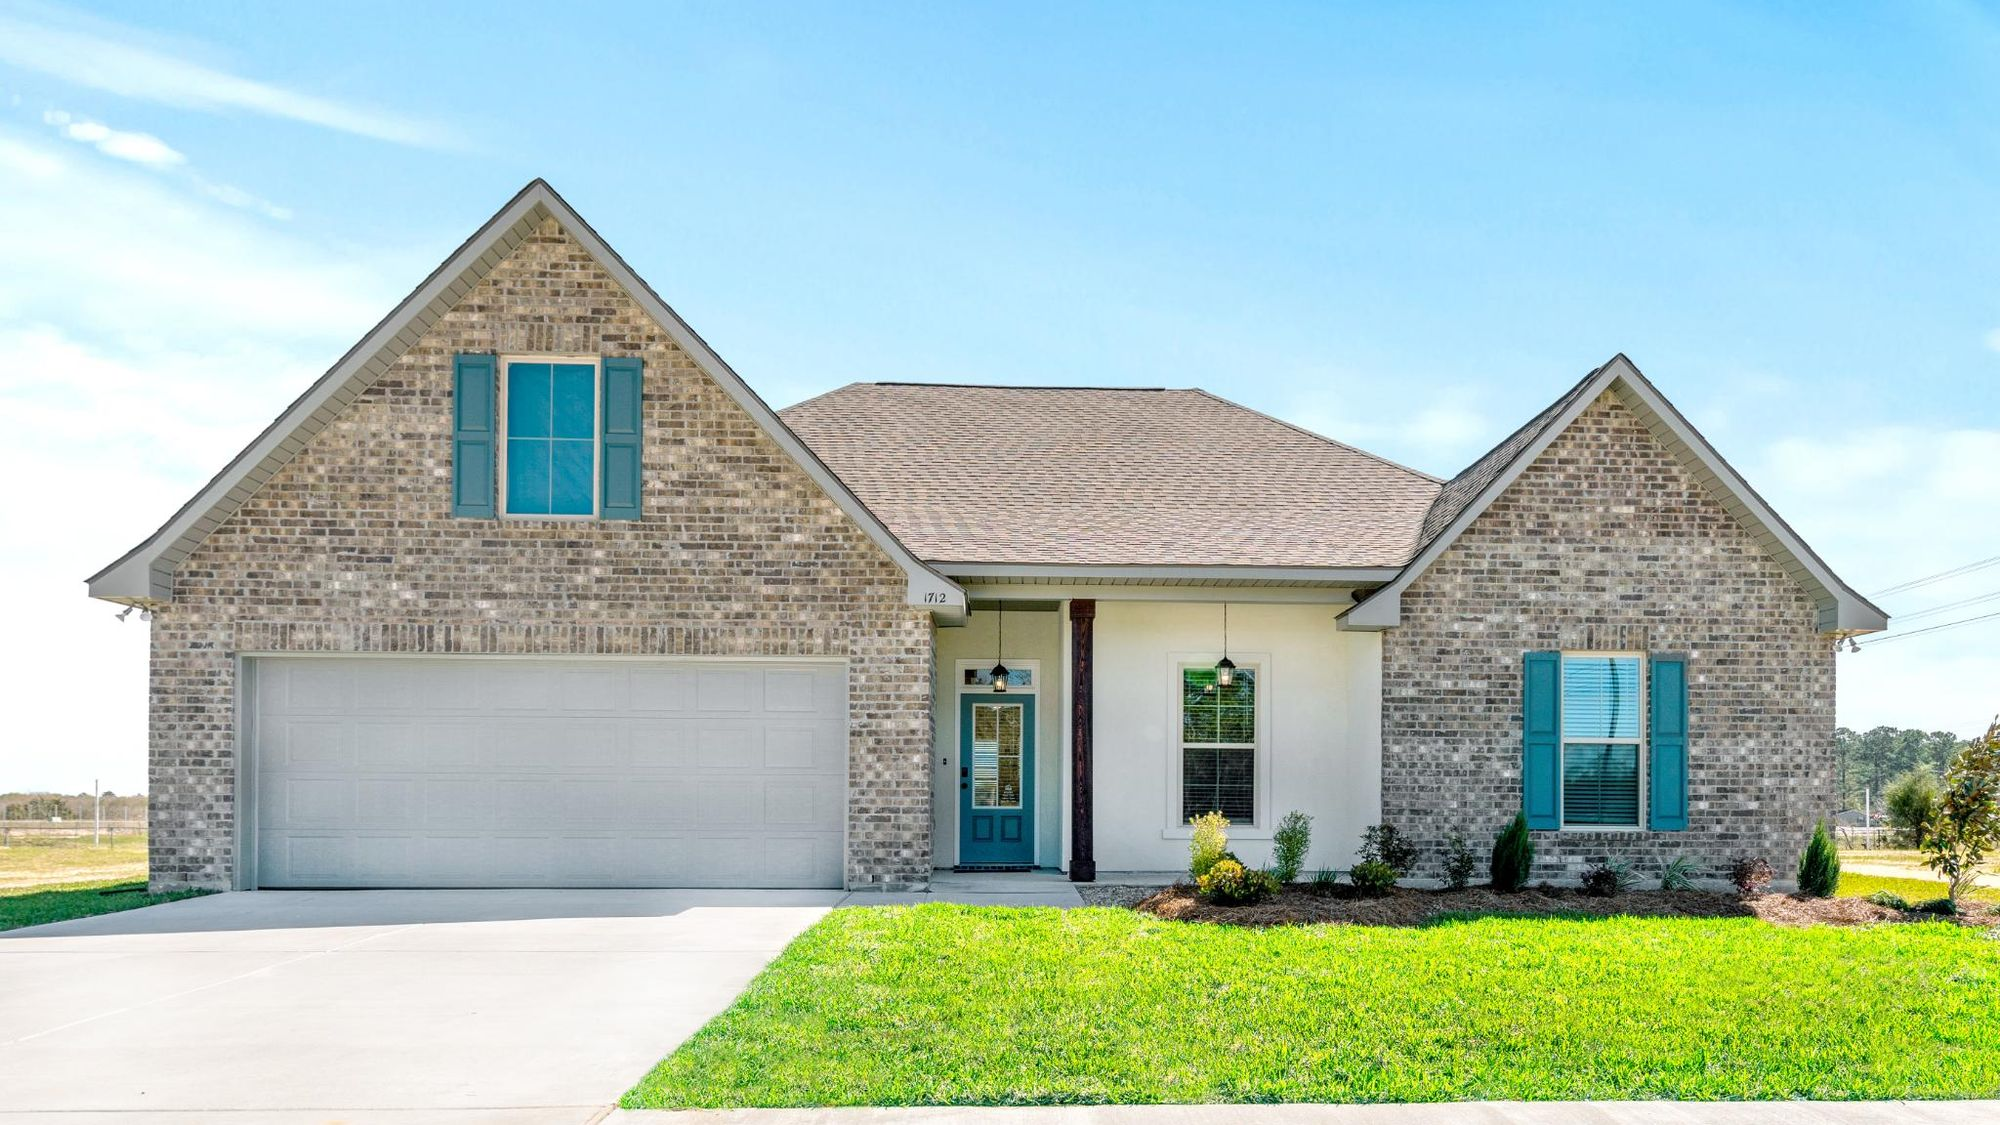 Porter's Cove Model Home Exterior - DSLD Homes - Lake Charles, LA